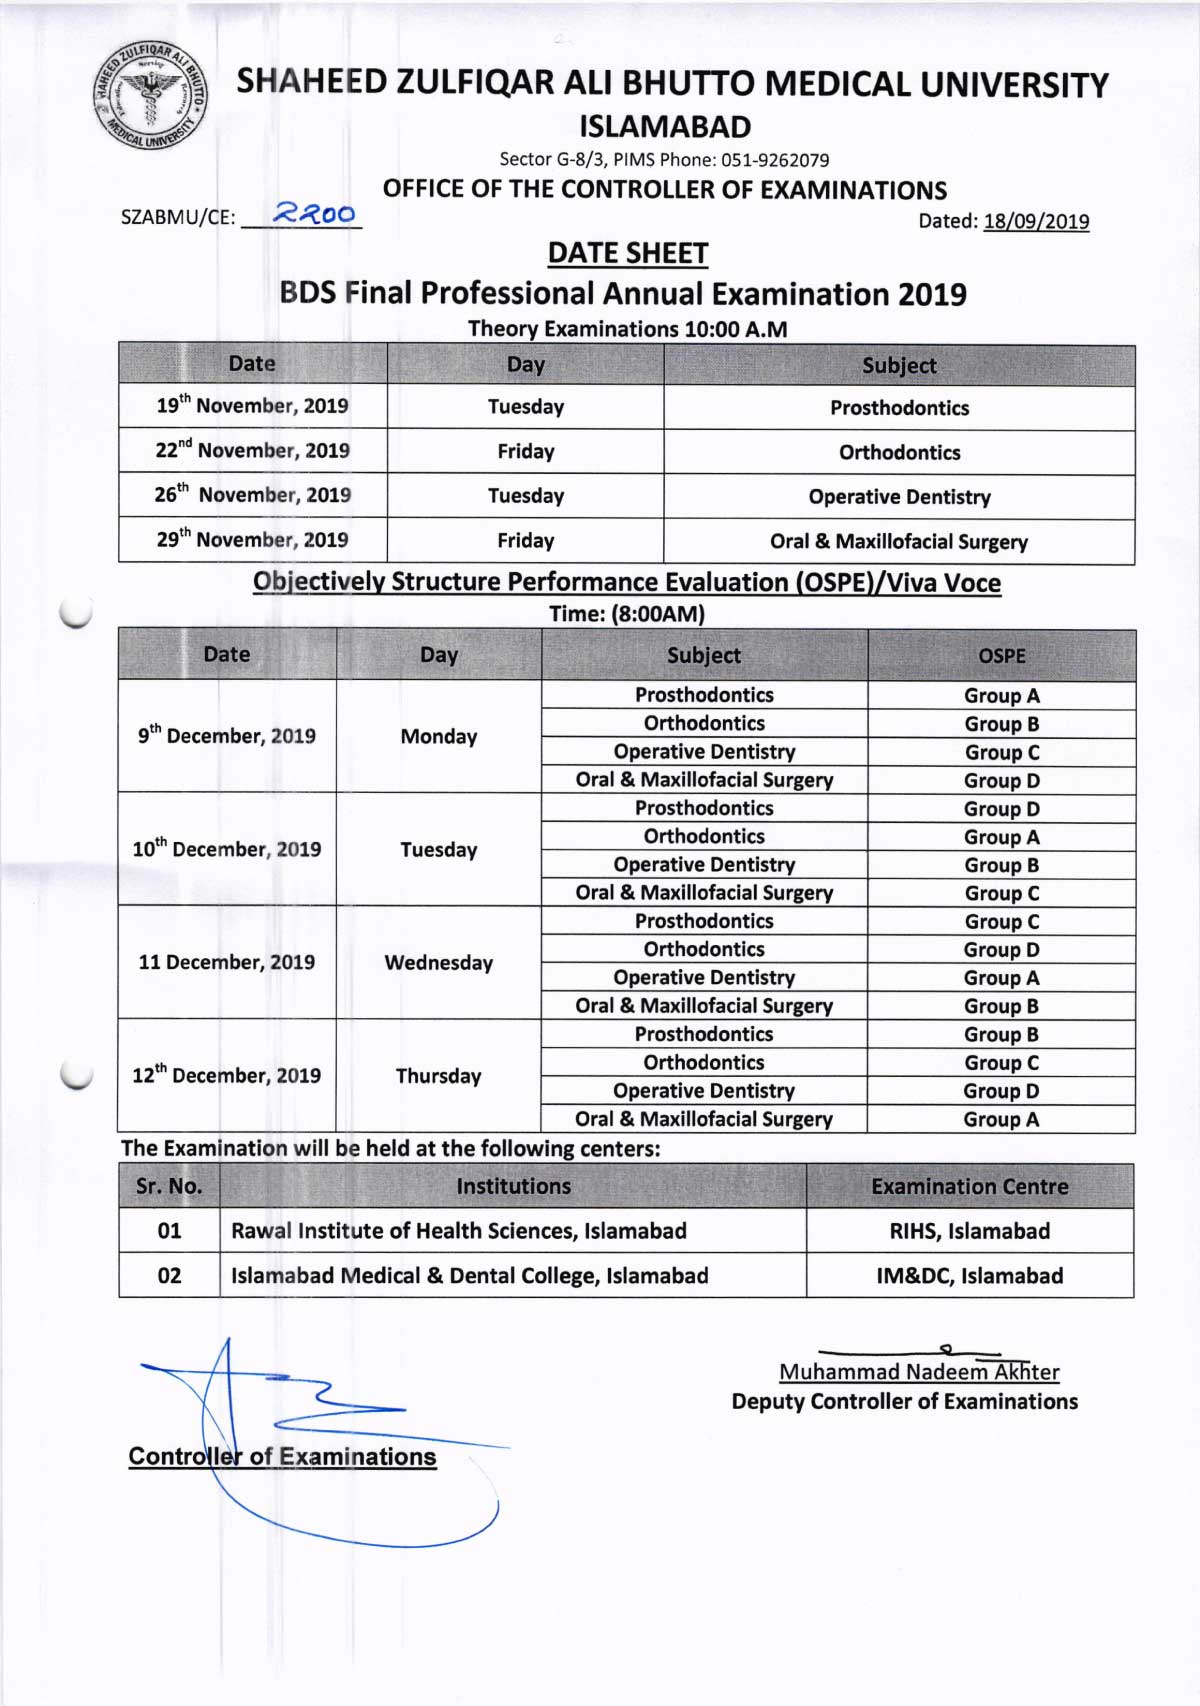 Date Sheets of BDS All Professionals Annual Exam 2019